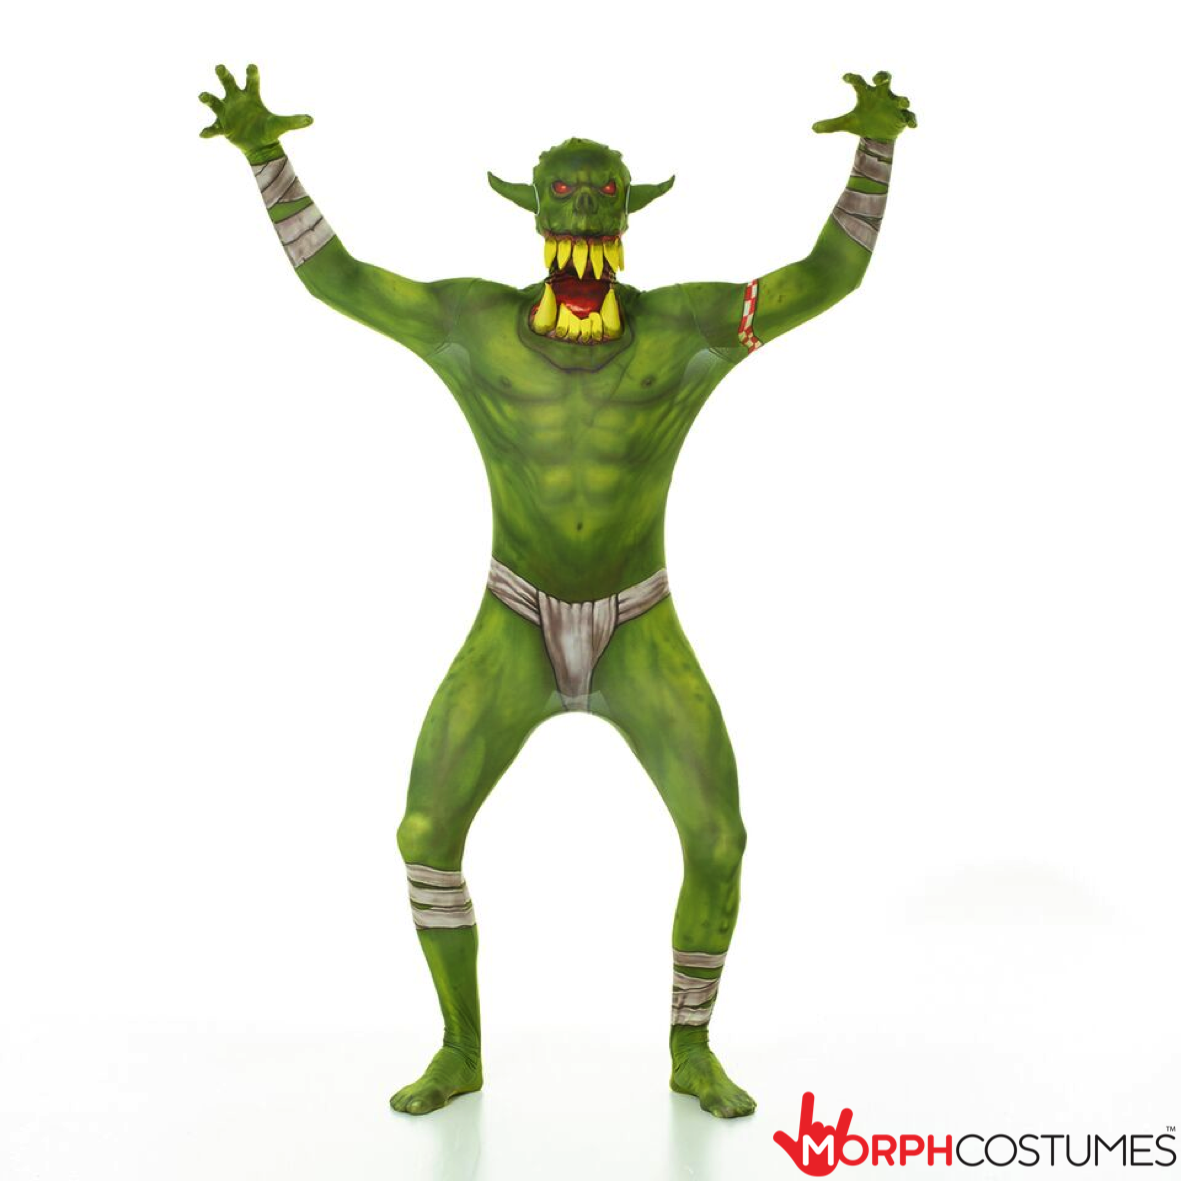 478758adb Jaw Dropper Orc Morphsuit - Green | New Costumes Coming Soon ...